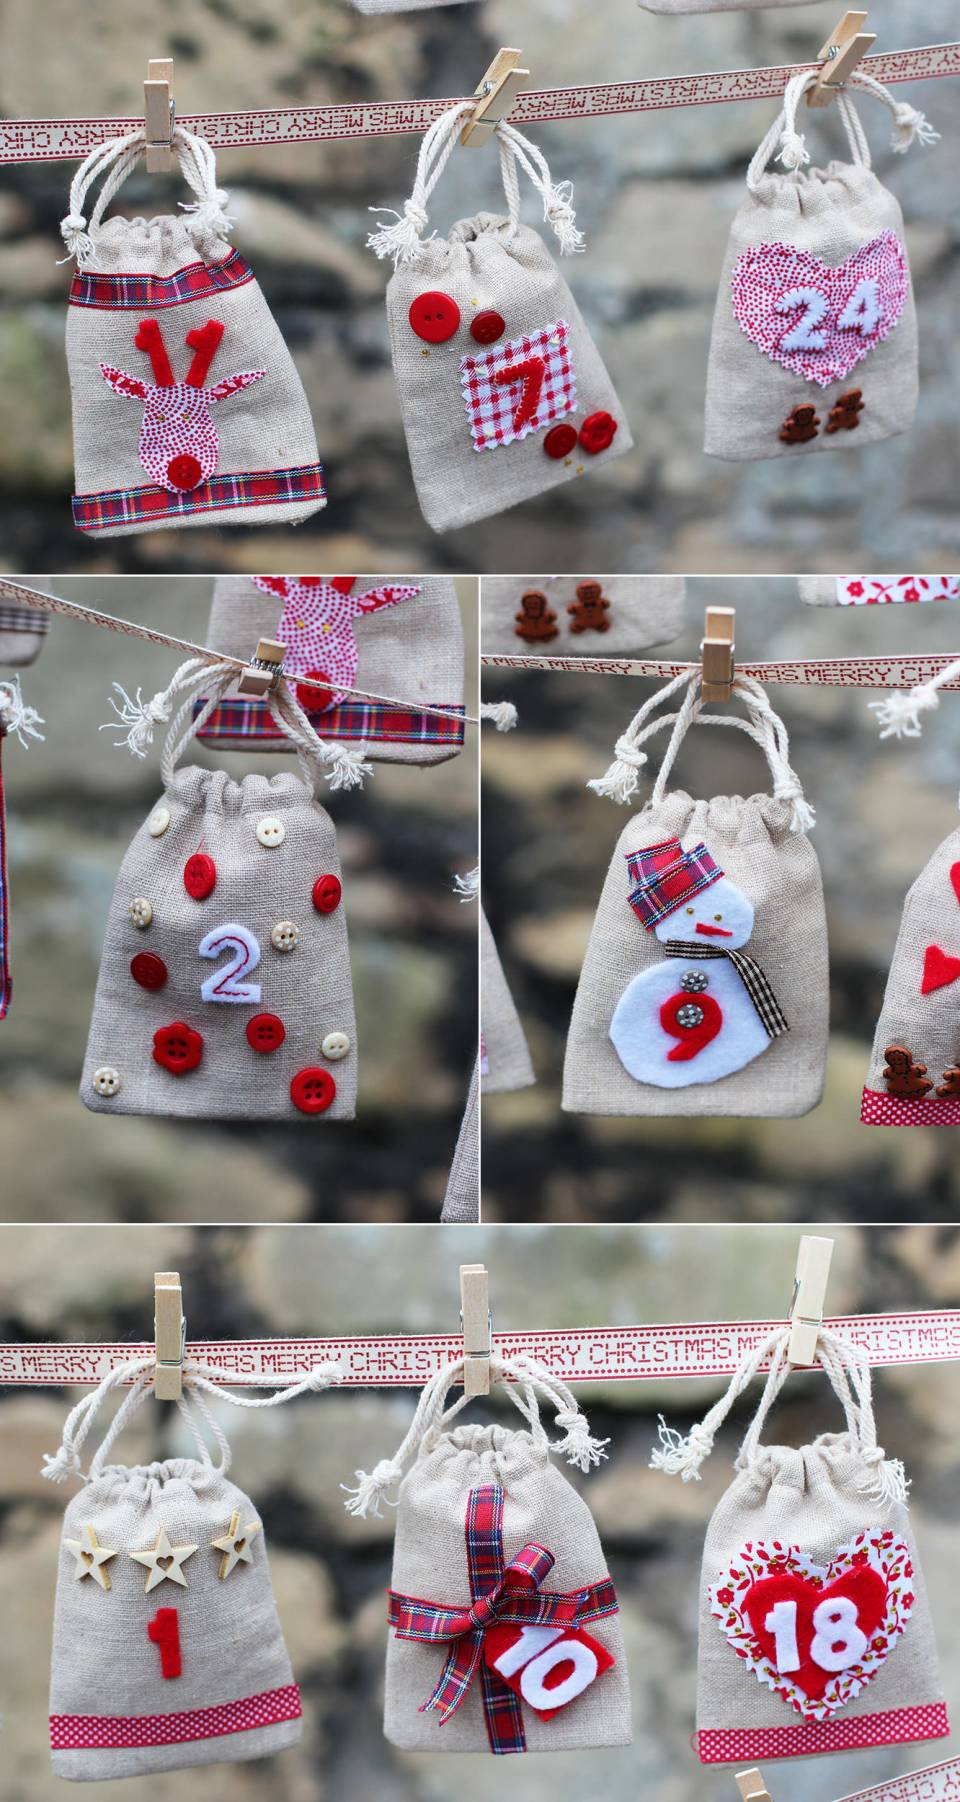 homemade-advent-calendar-hen-party-craft-10